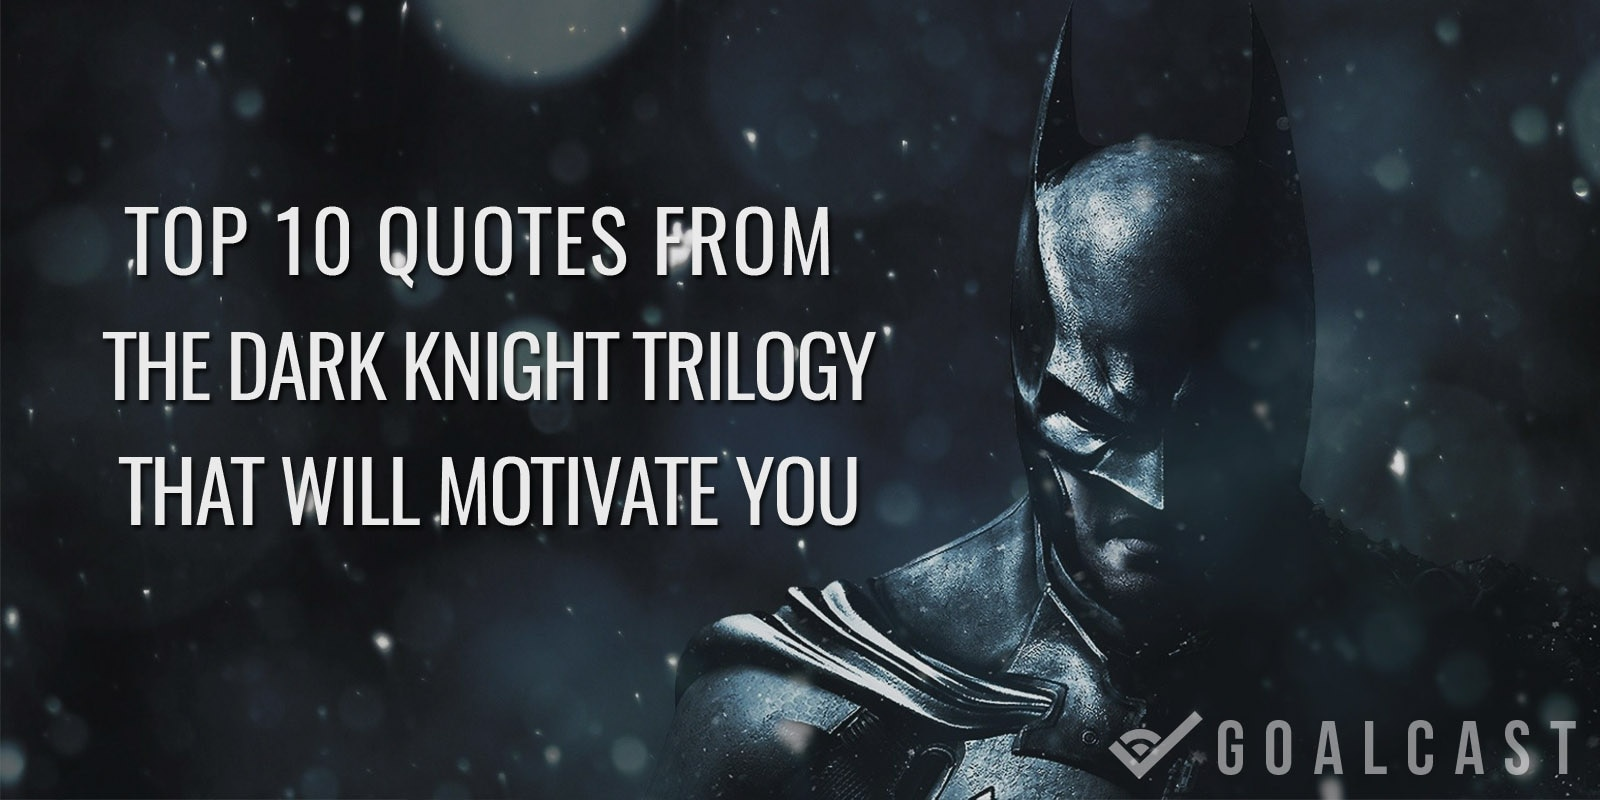 Inspirational Motivational Quotes Top 10 Quotes From Batman Dark Knight Trilogy That Will Motivate